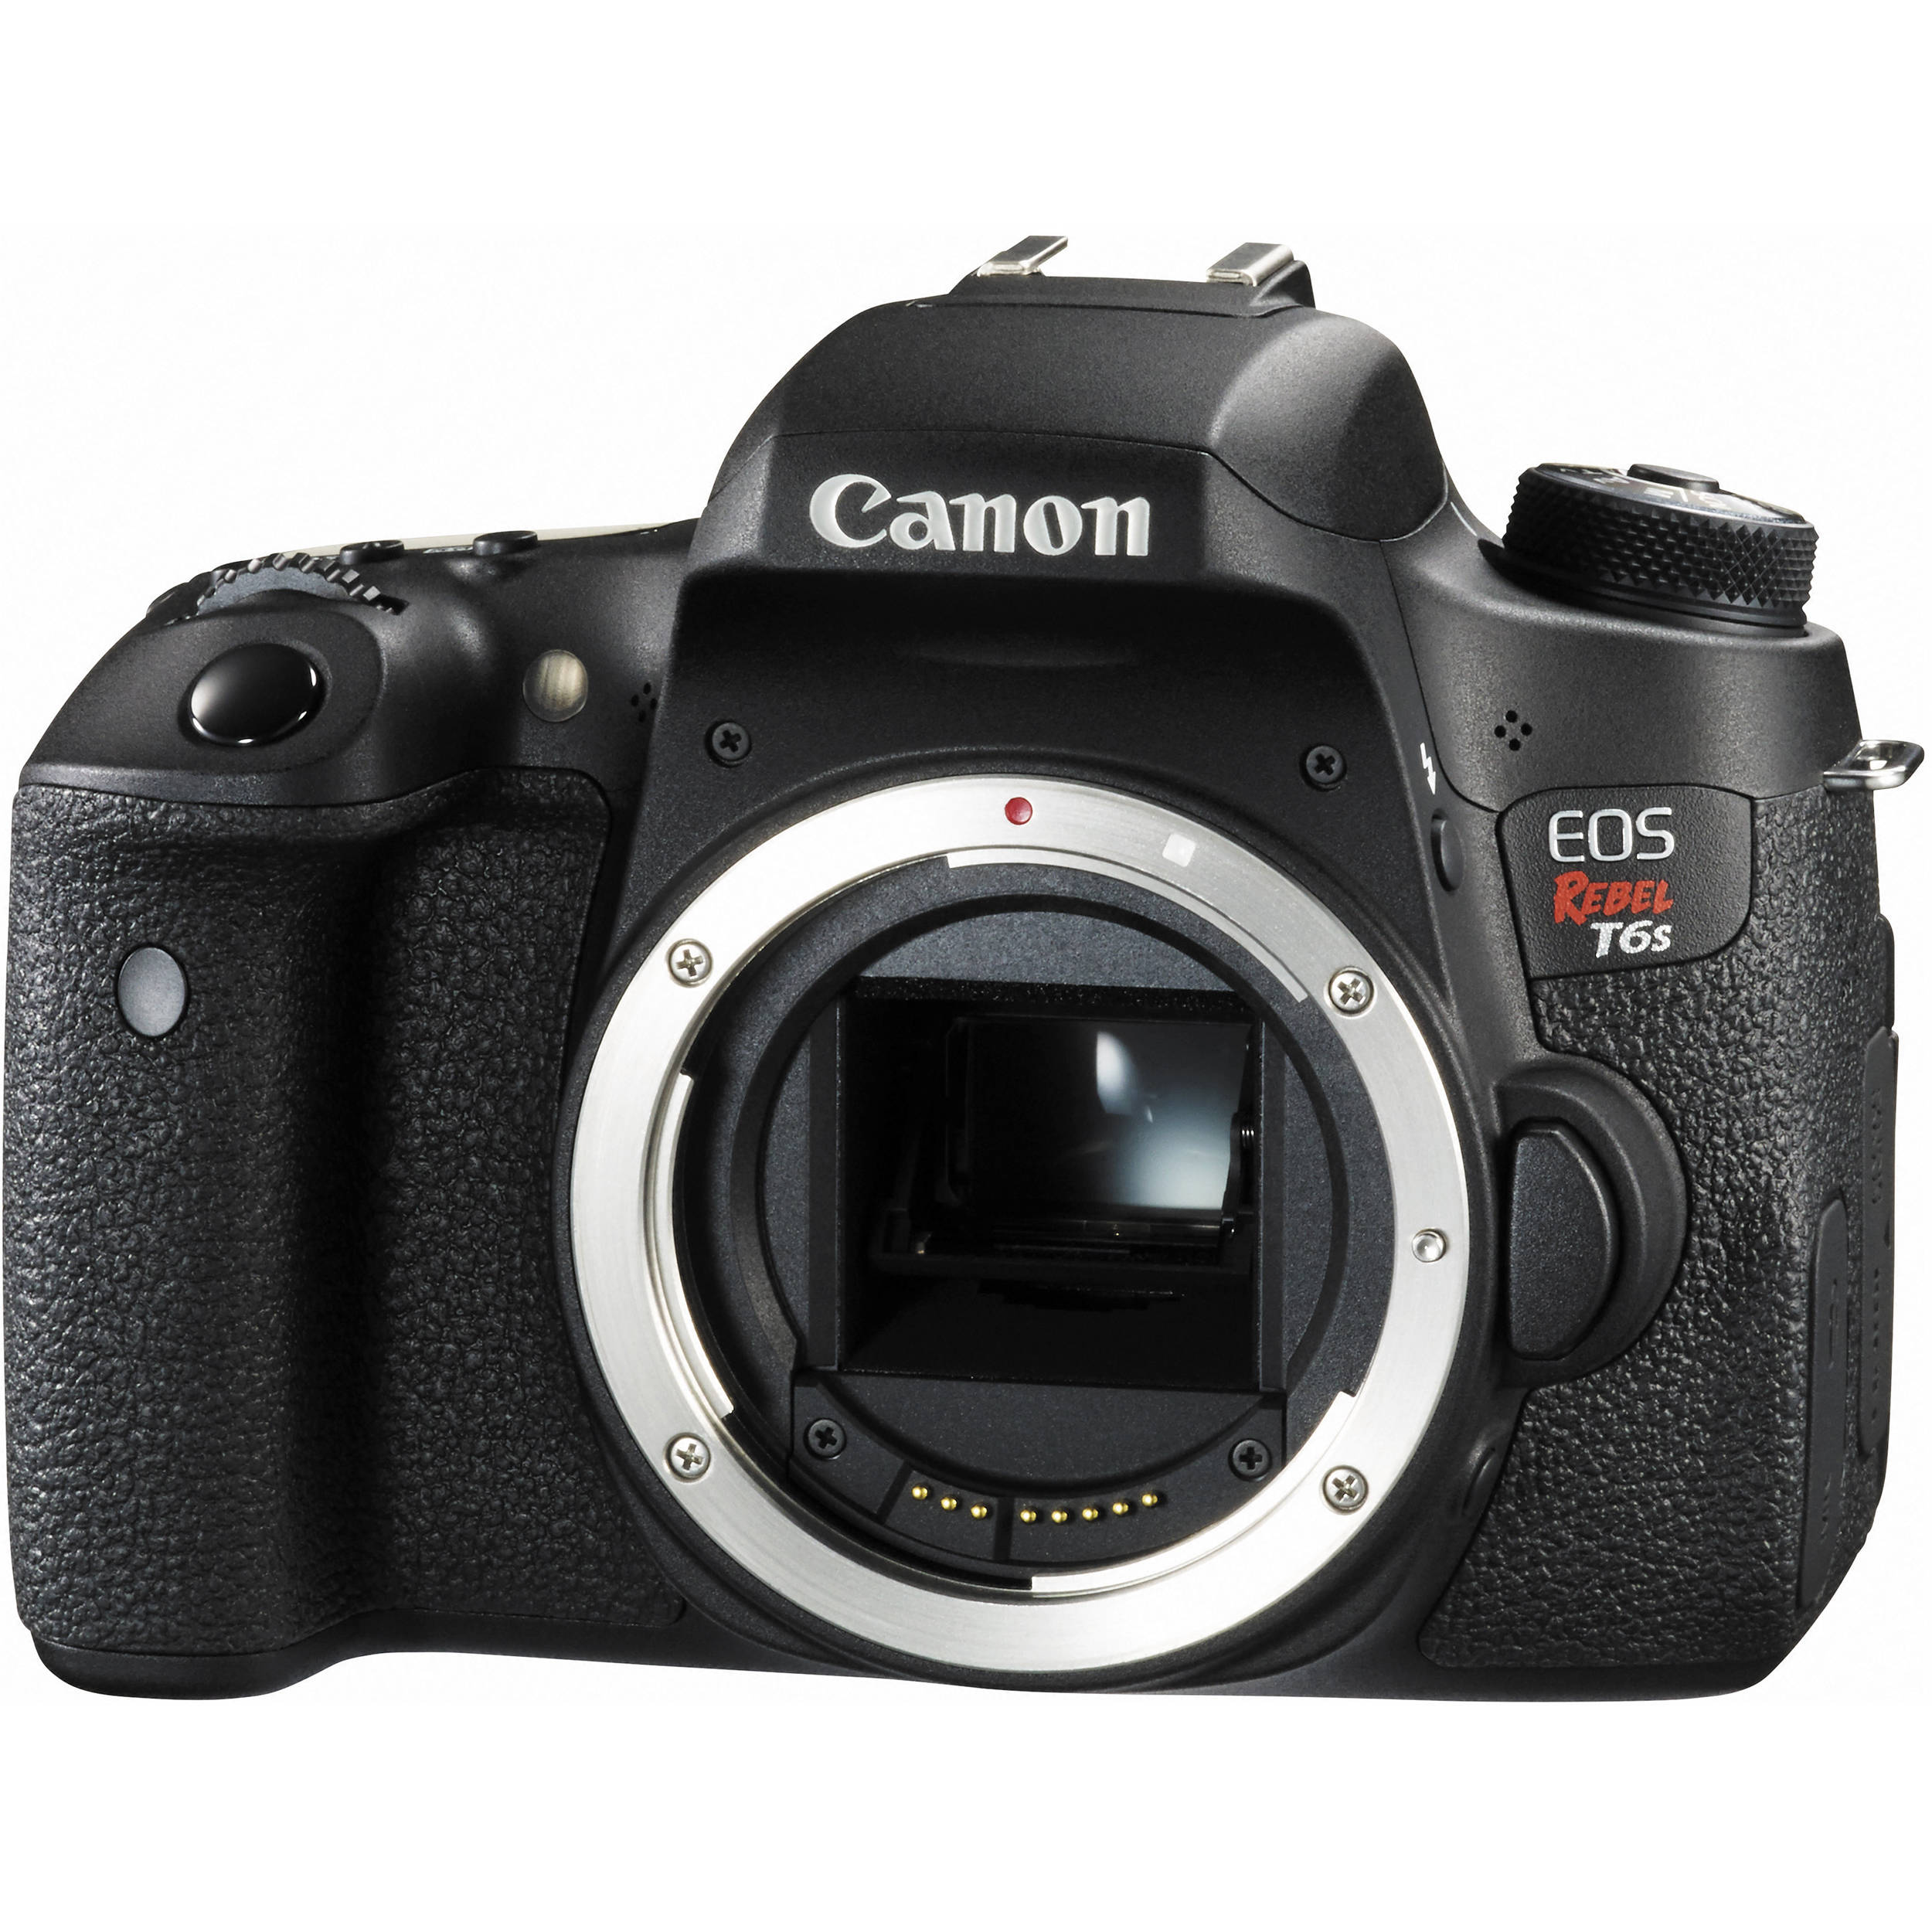 Camera New Canon Dslr Cameras Coming Soon canon eos 77d rebel t7i to be announced soon camera news at t6s